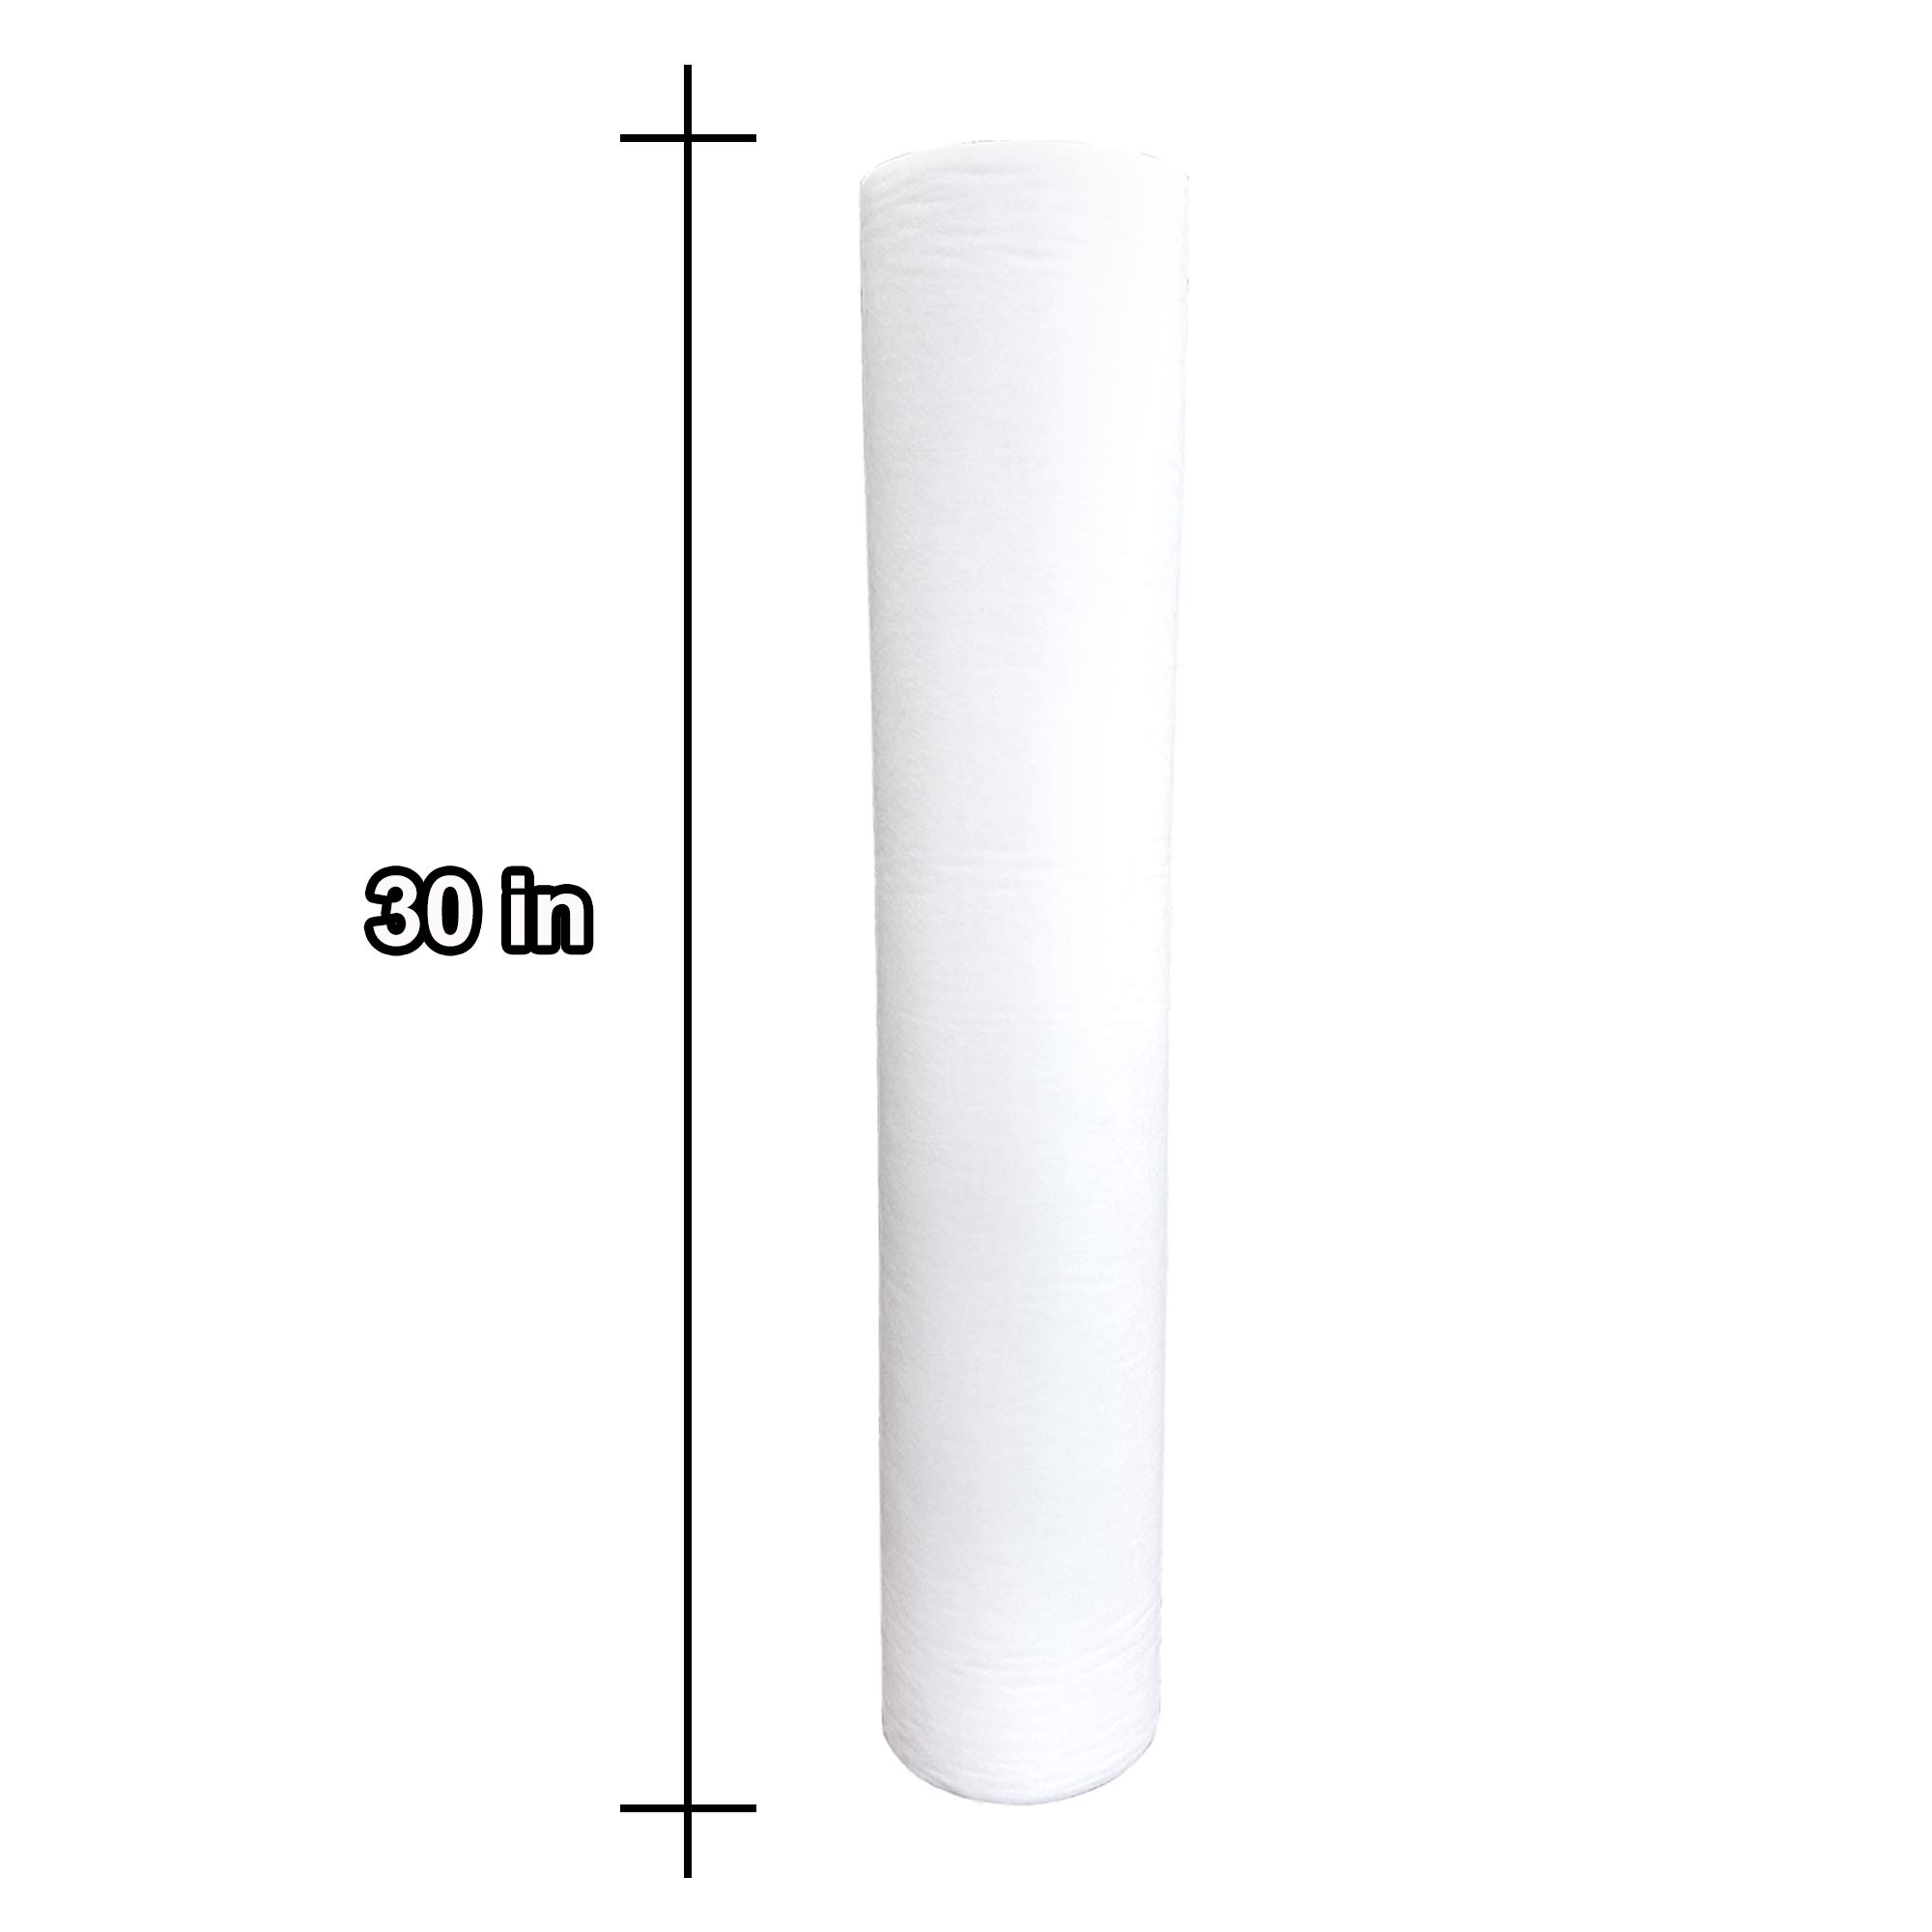 TOA Supply Disposable Non Woven Paper Exam Table Bed Cover, White, 50 Sheet by TOA Supply (Image #8)